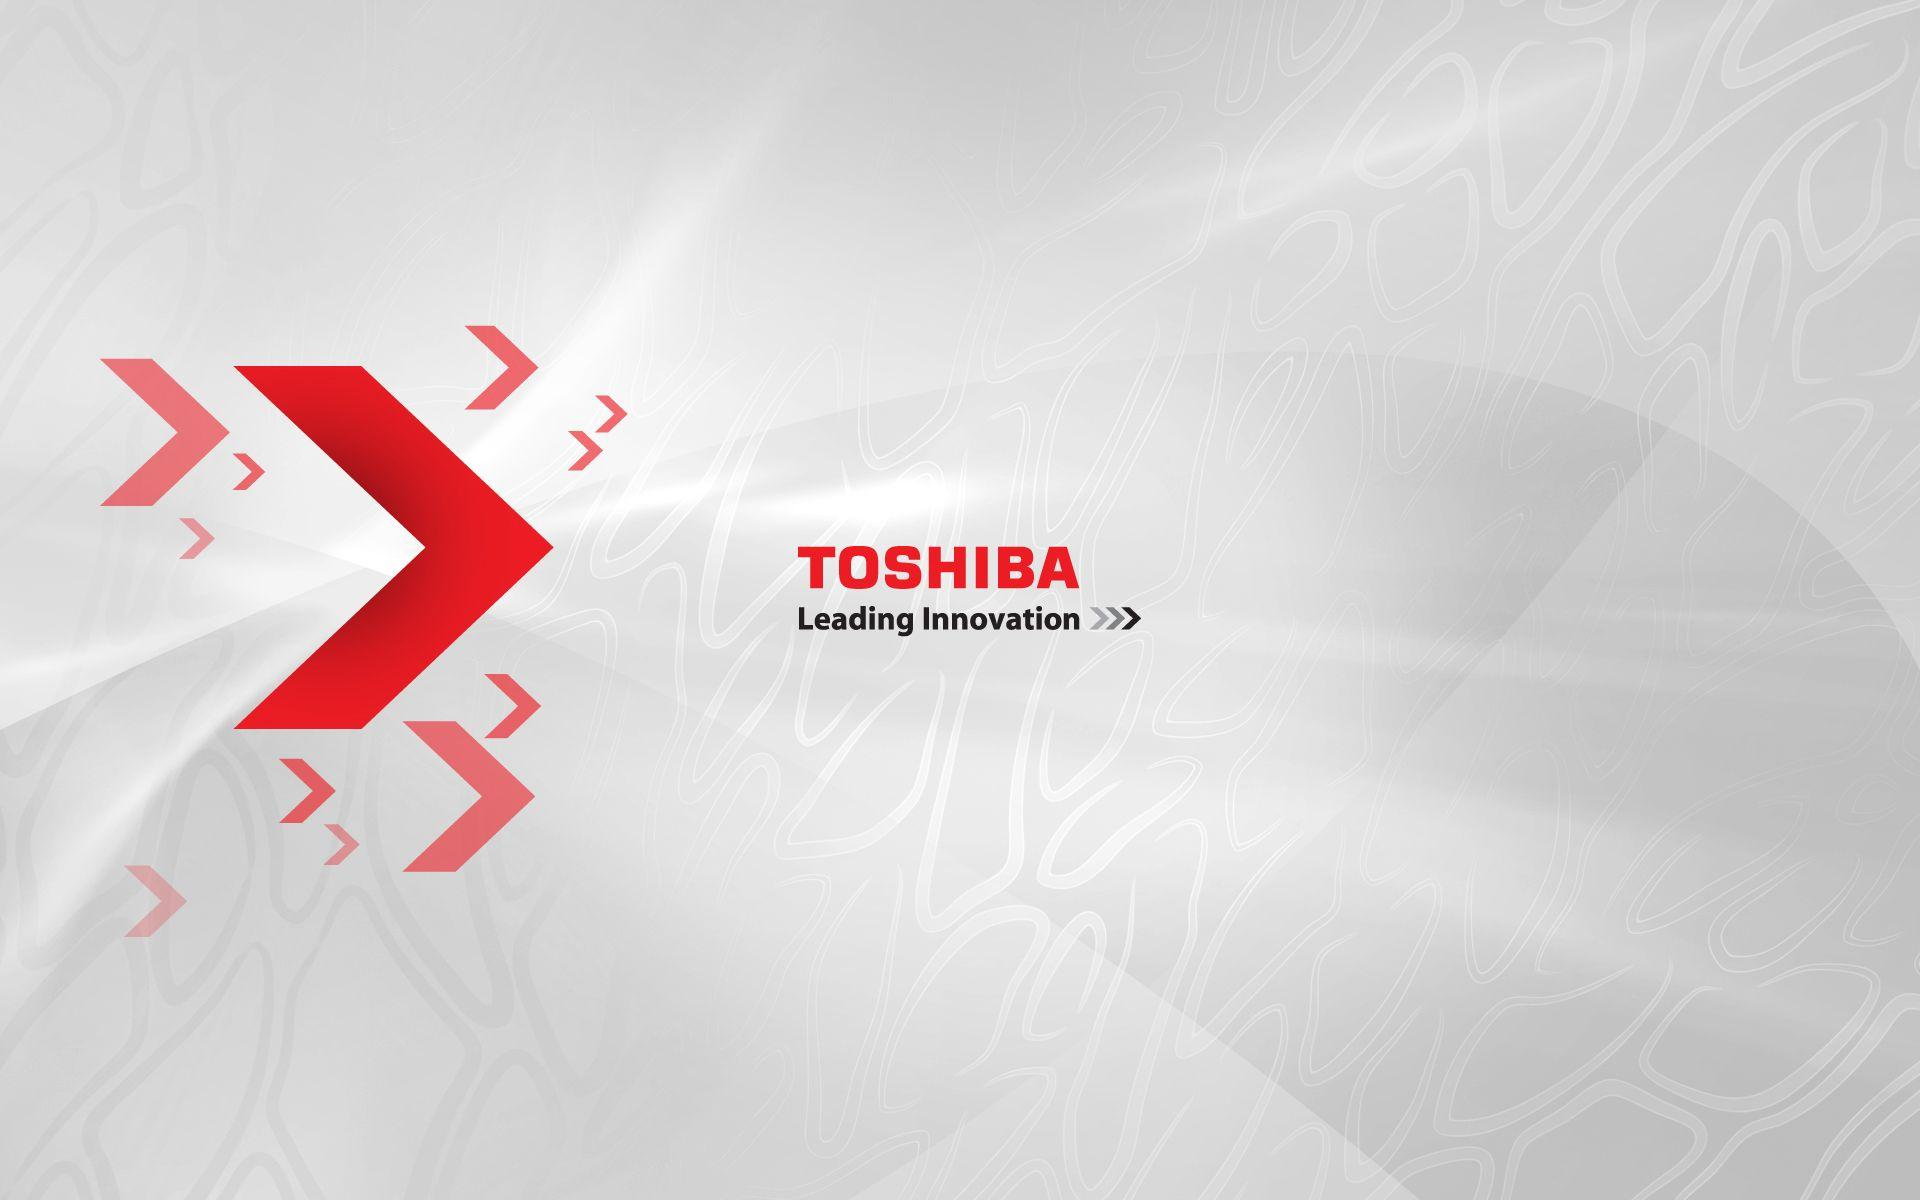 Laptops Wallpaper: desktop wallpapers 1920×1200 Toshiba Desktop